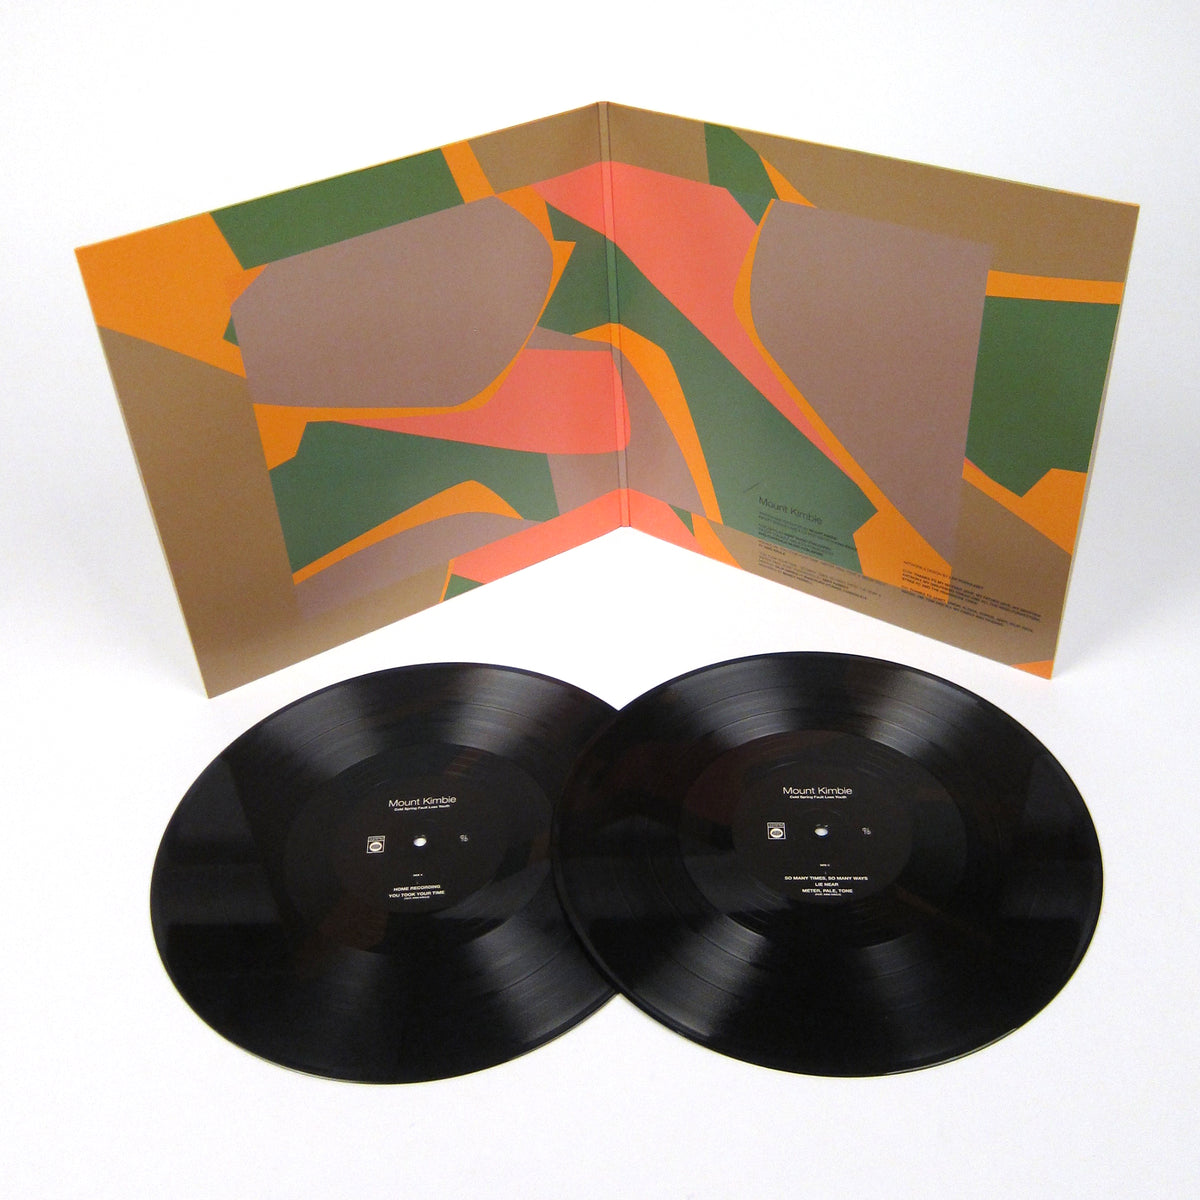 Mount Kimbie: Cold Spring Fault Less Youth 2LP